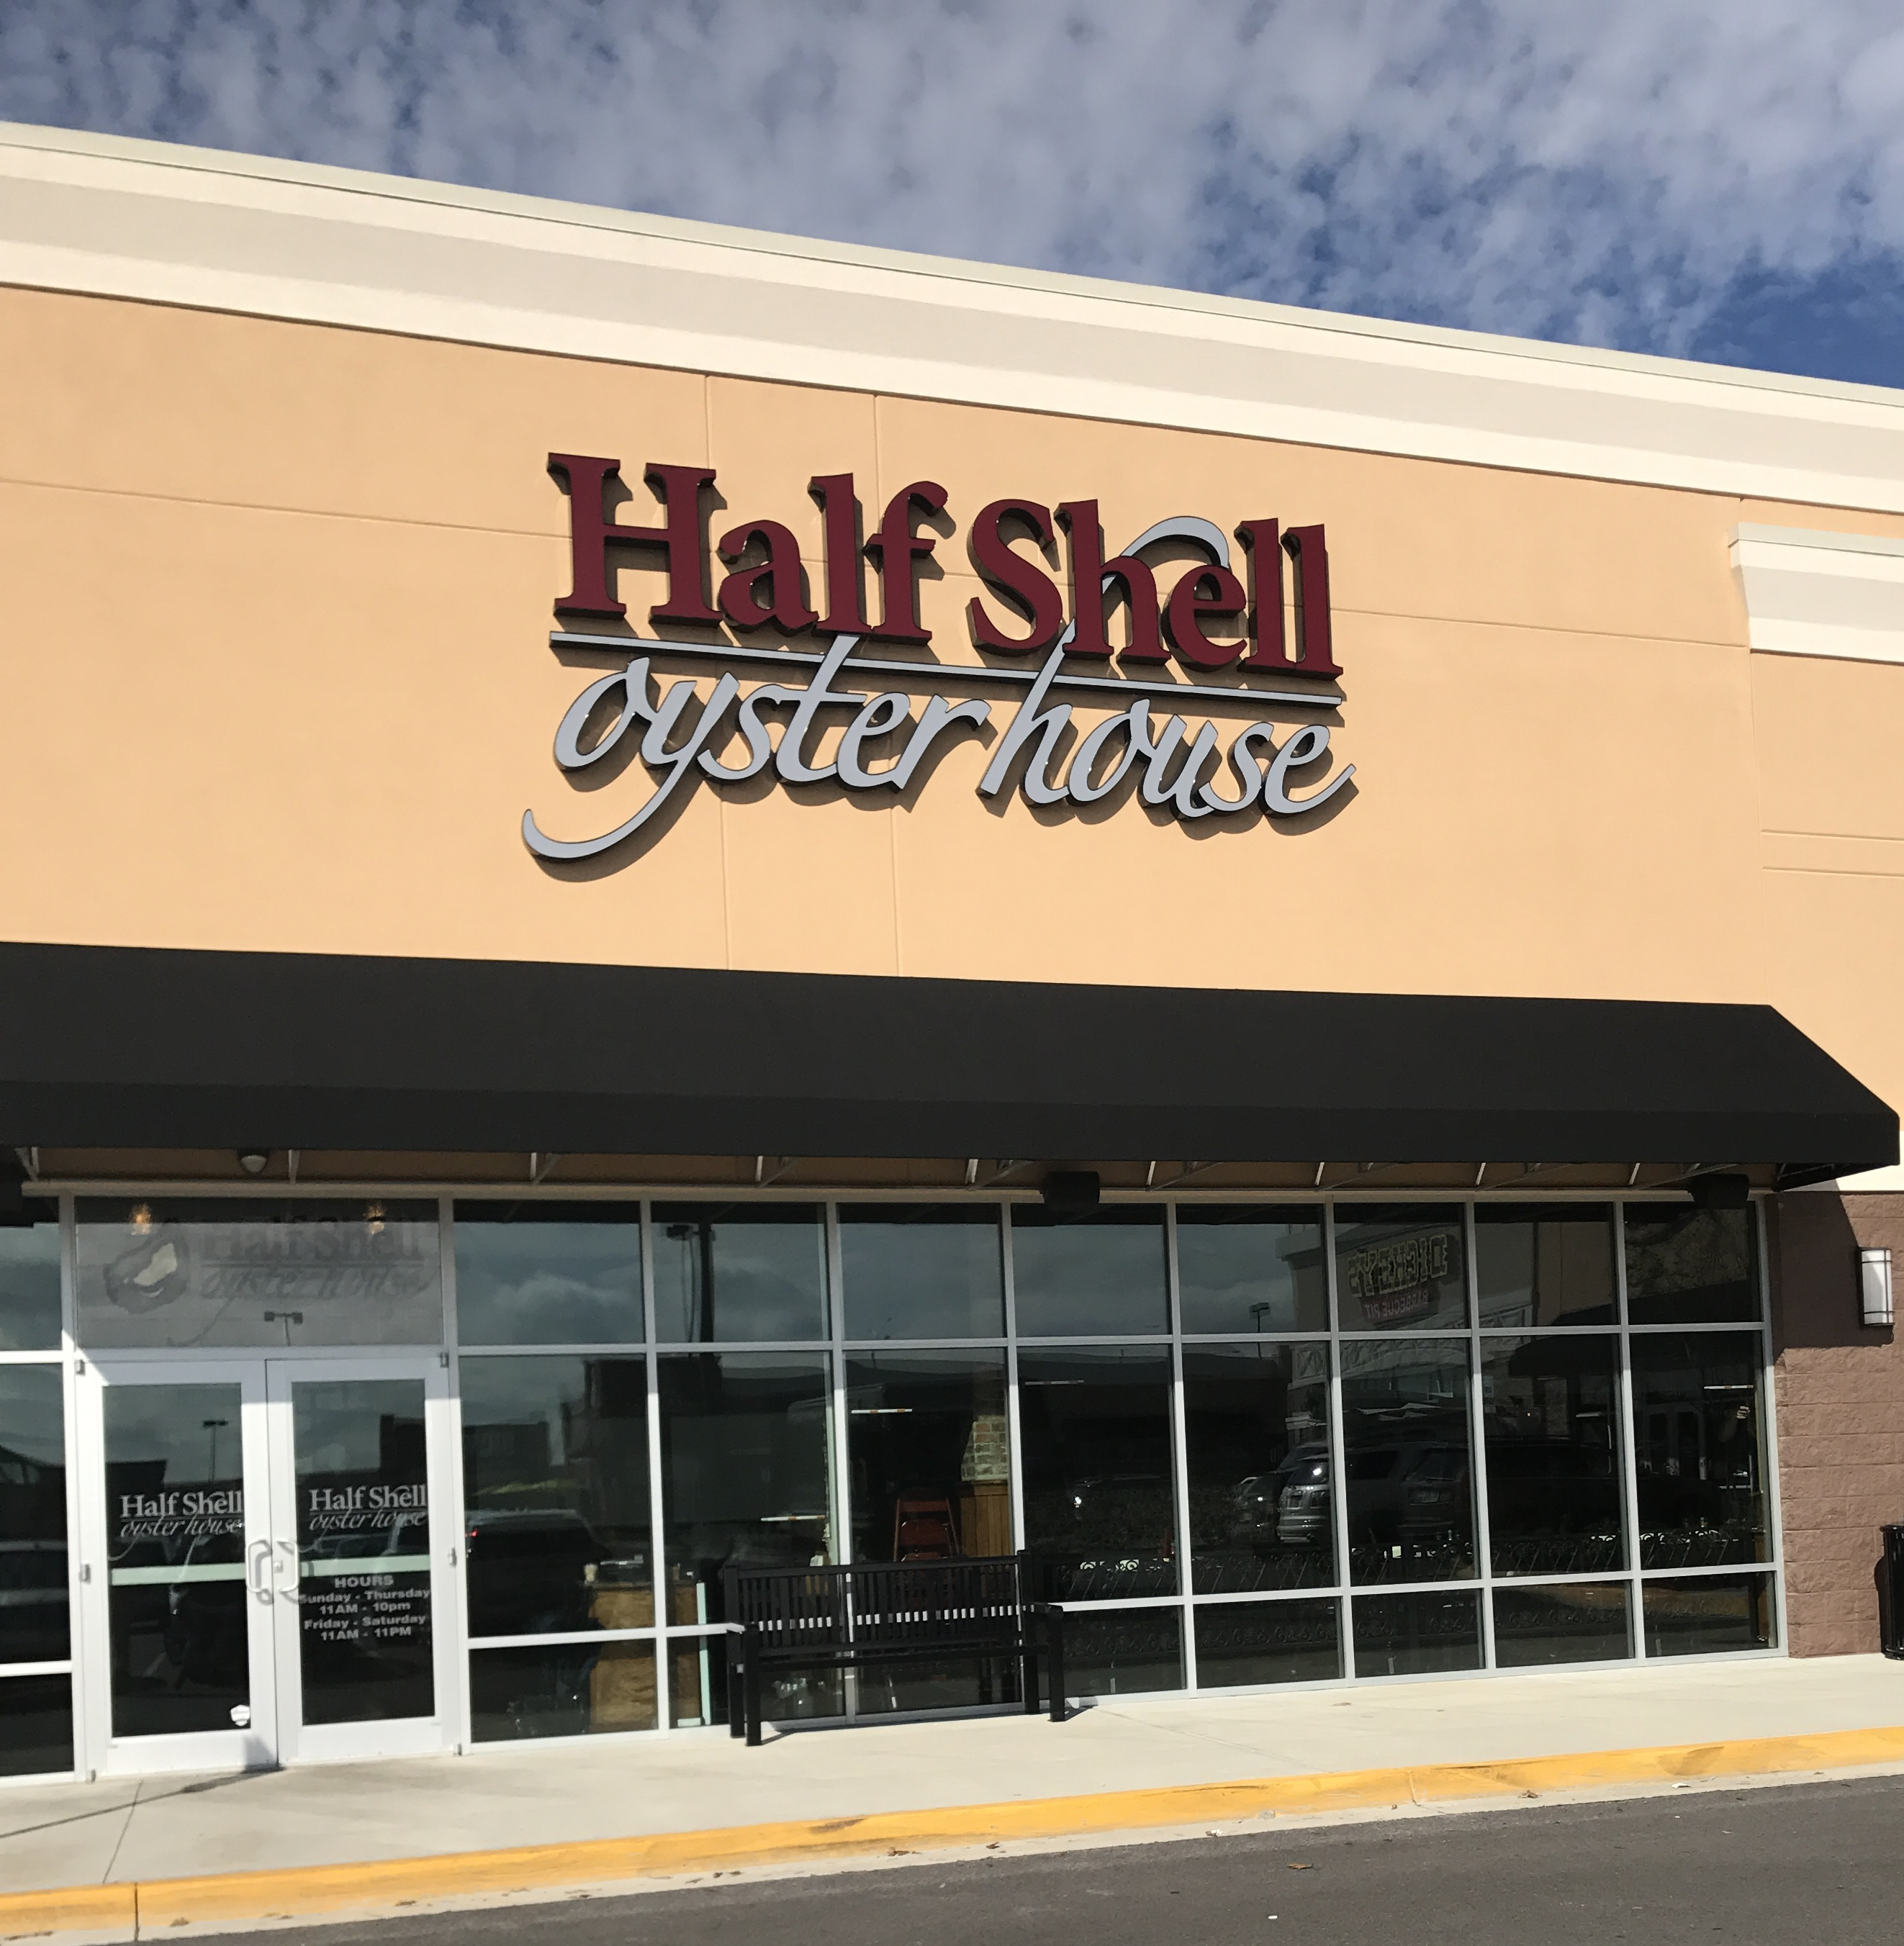 Half Shell Oyster House Is A Seafood Restaurant With New Orleans Flare  Serving Up Gulf Oysters And A Variety Of Gulf Coast Seafood.